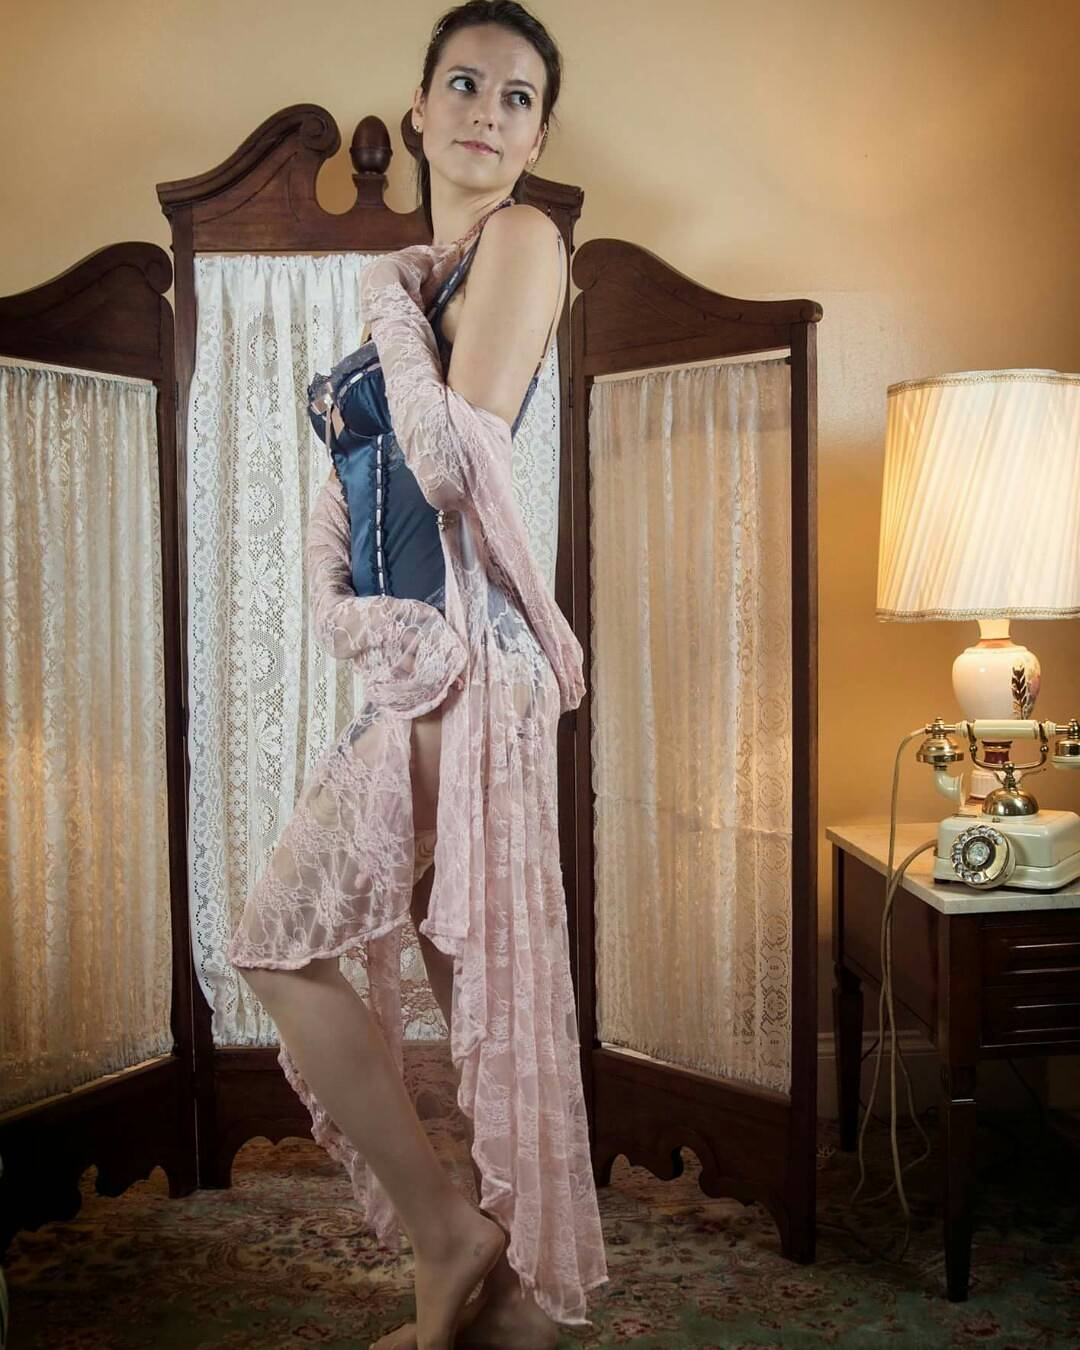 Model wearing lacy lingerie in soft blue and pink colors from the curated collection of VaVaVooom in Asheville NC.